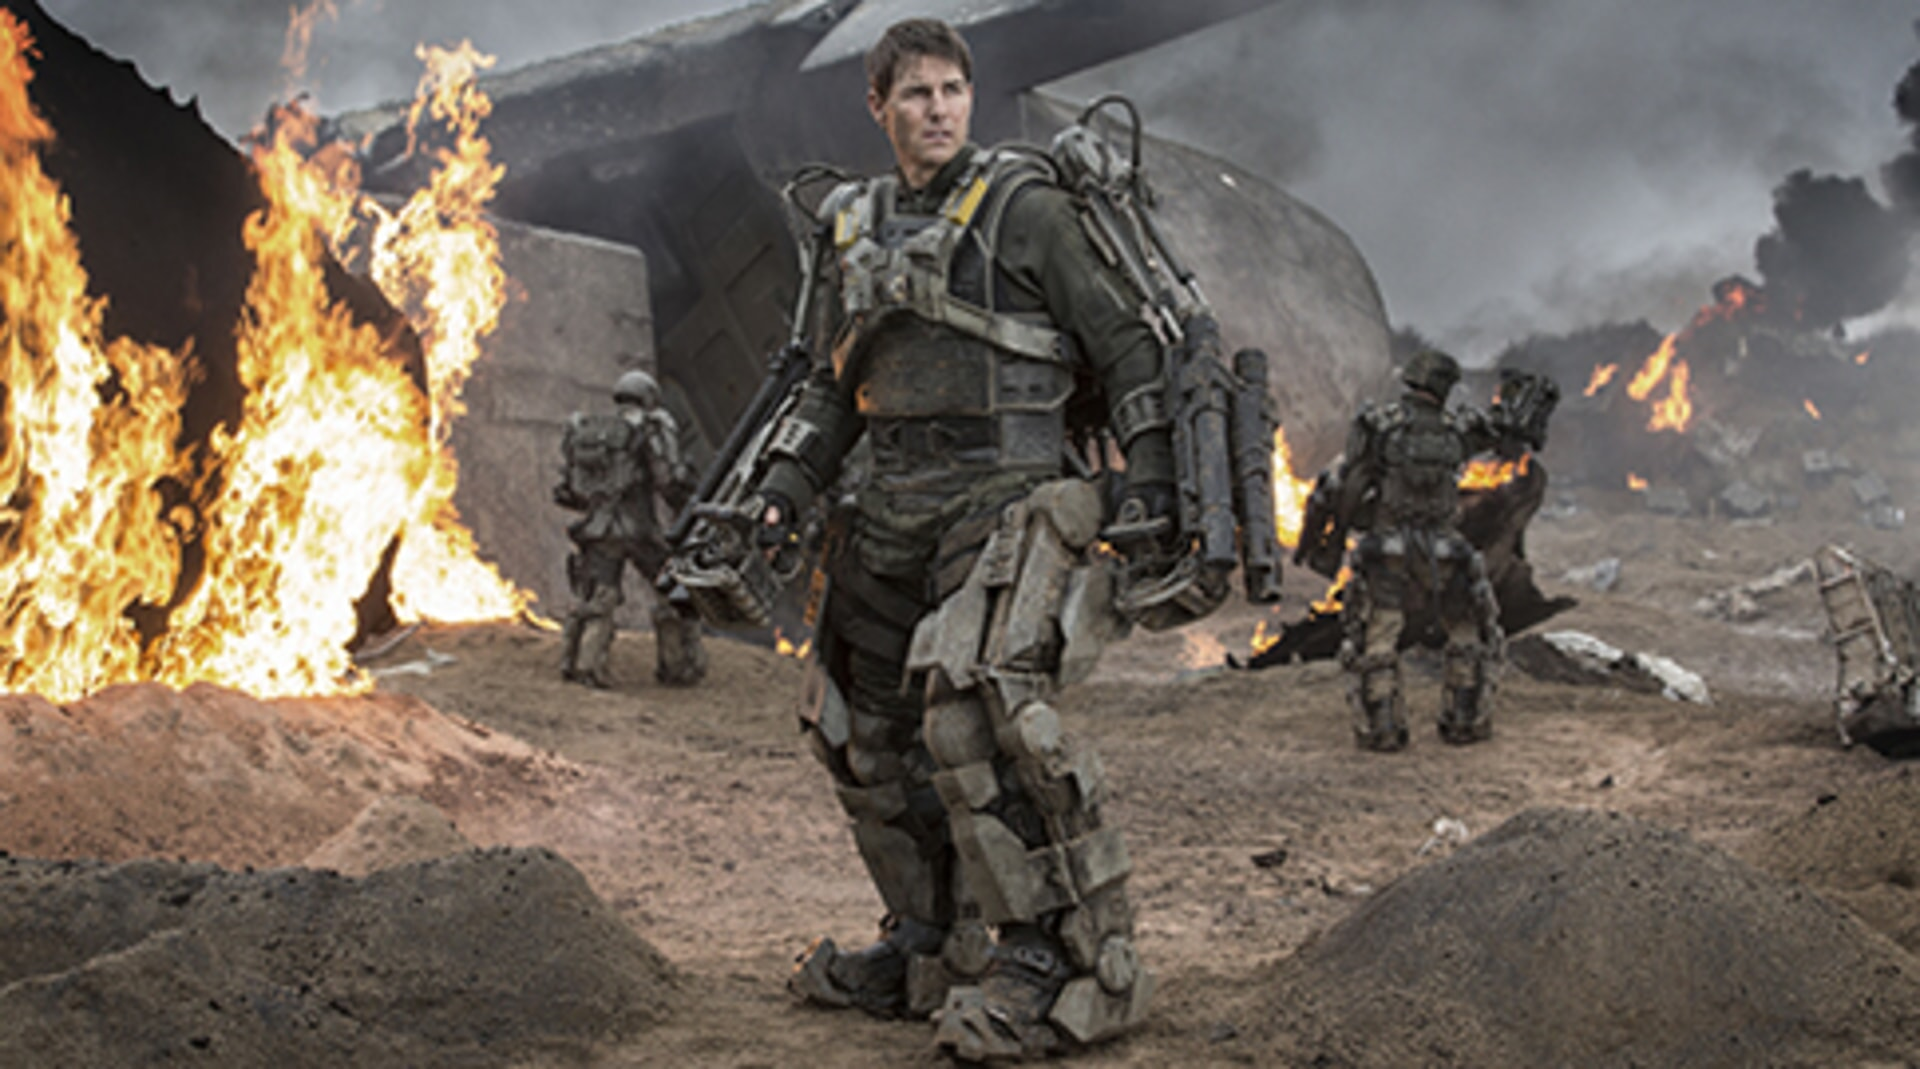 Edge of Tomorrow - Image 5